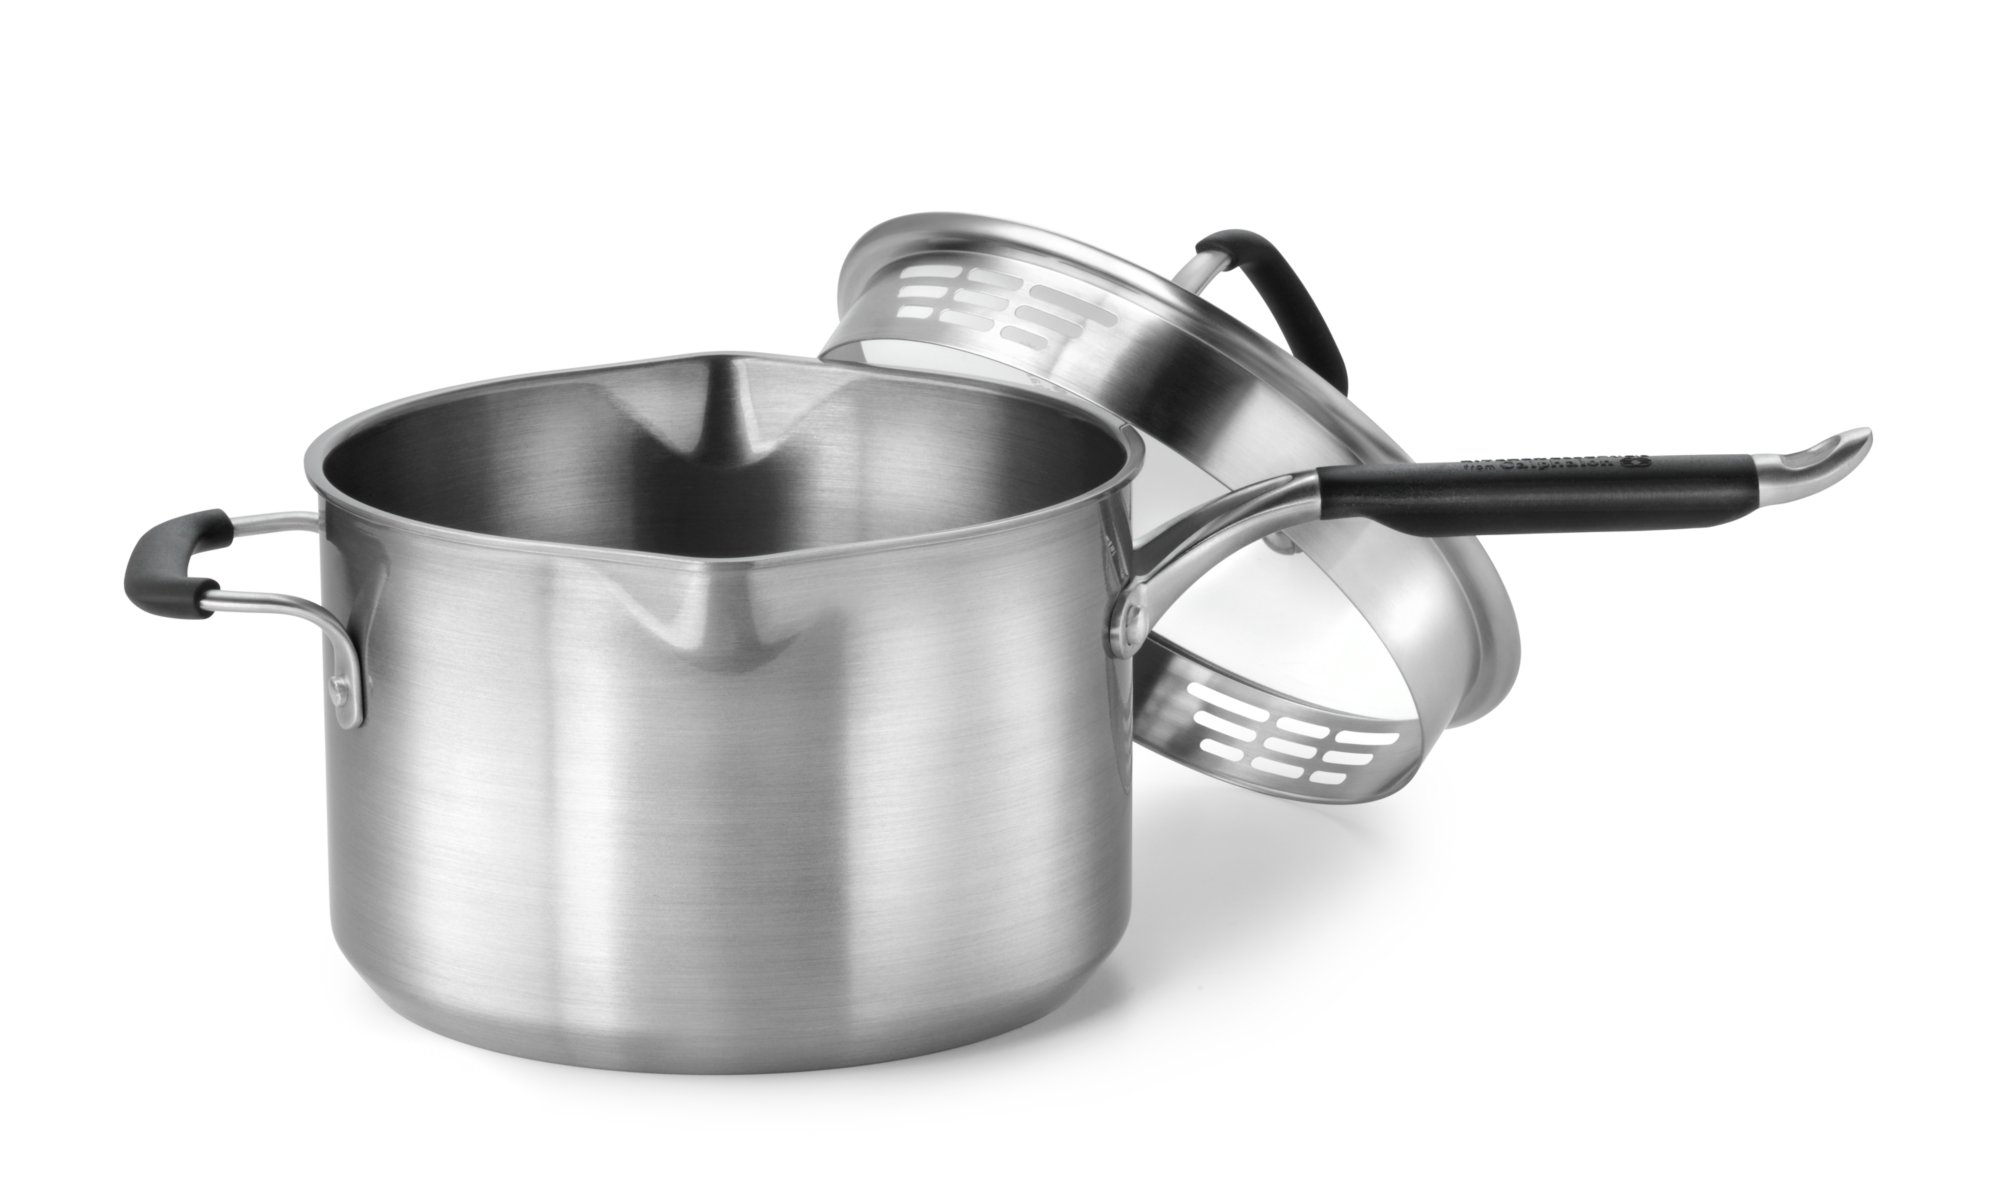 Calphalon Kitchen Essentials Stainless Steel 4-qt. Sauce Pan with ...